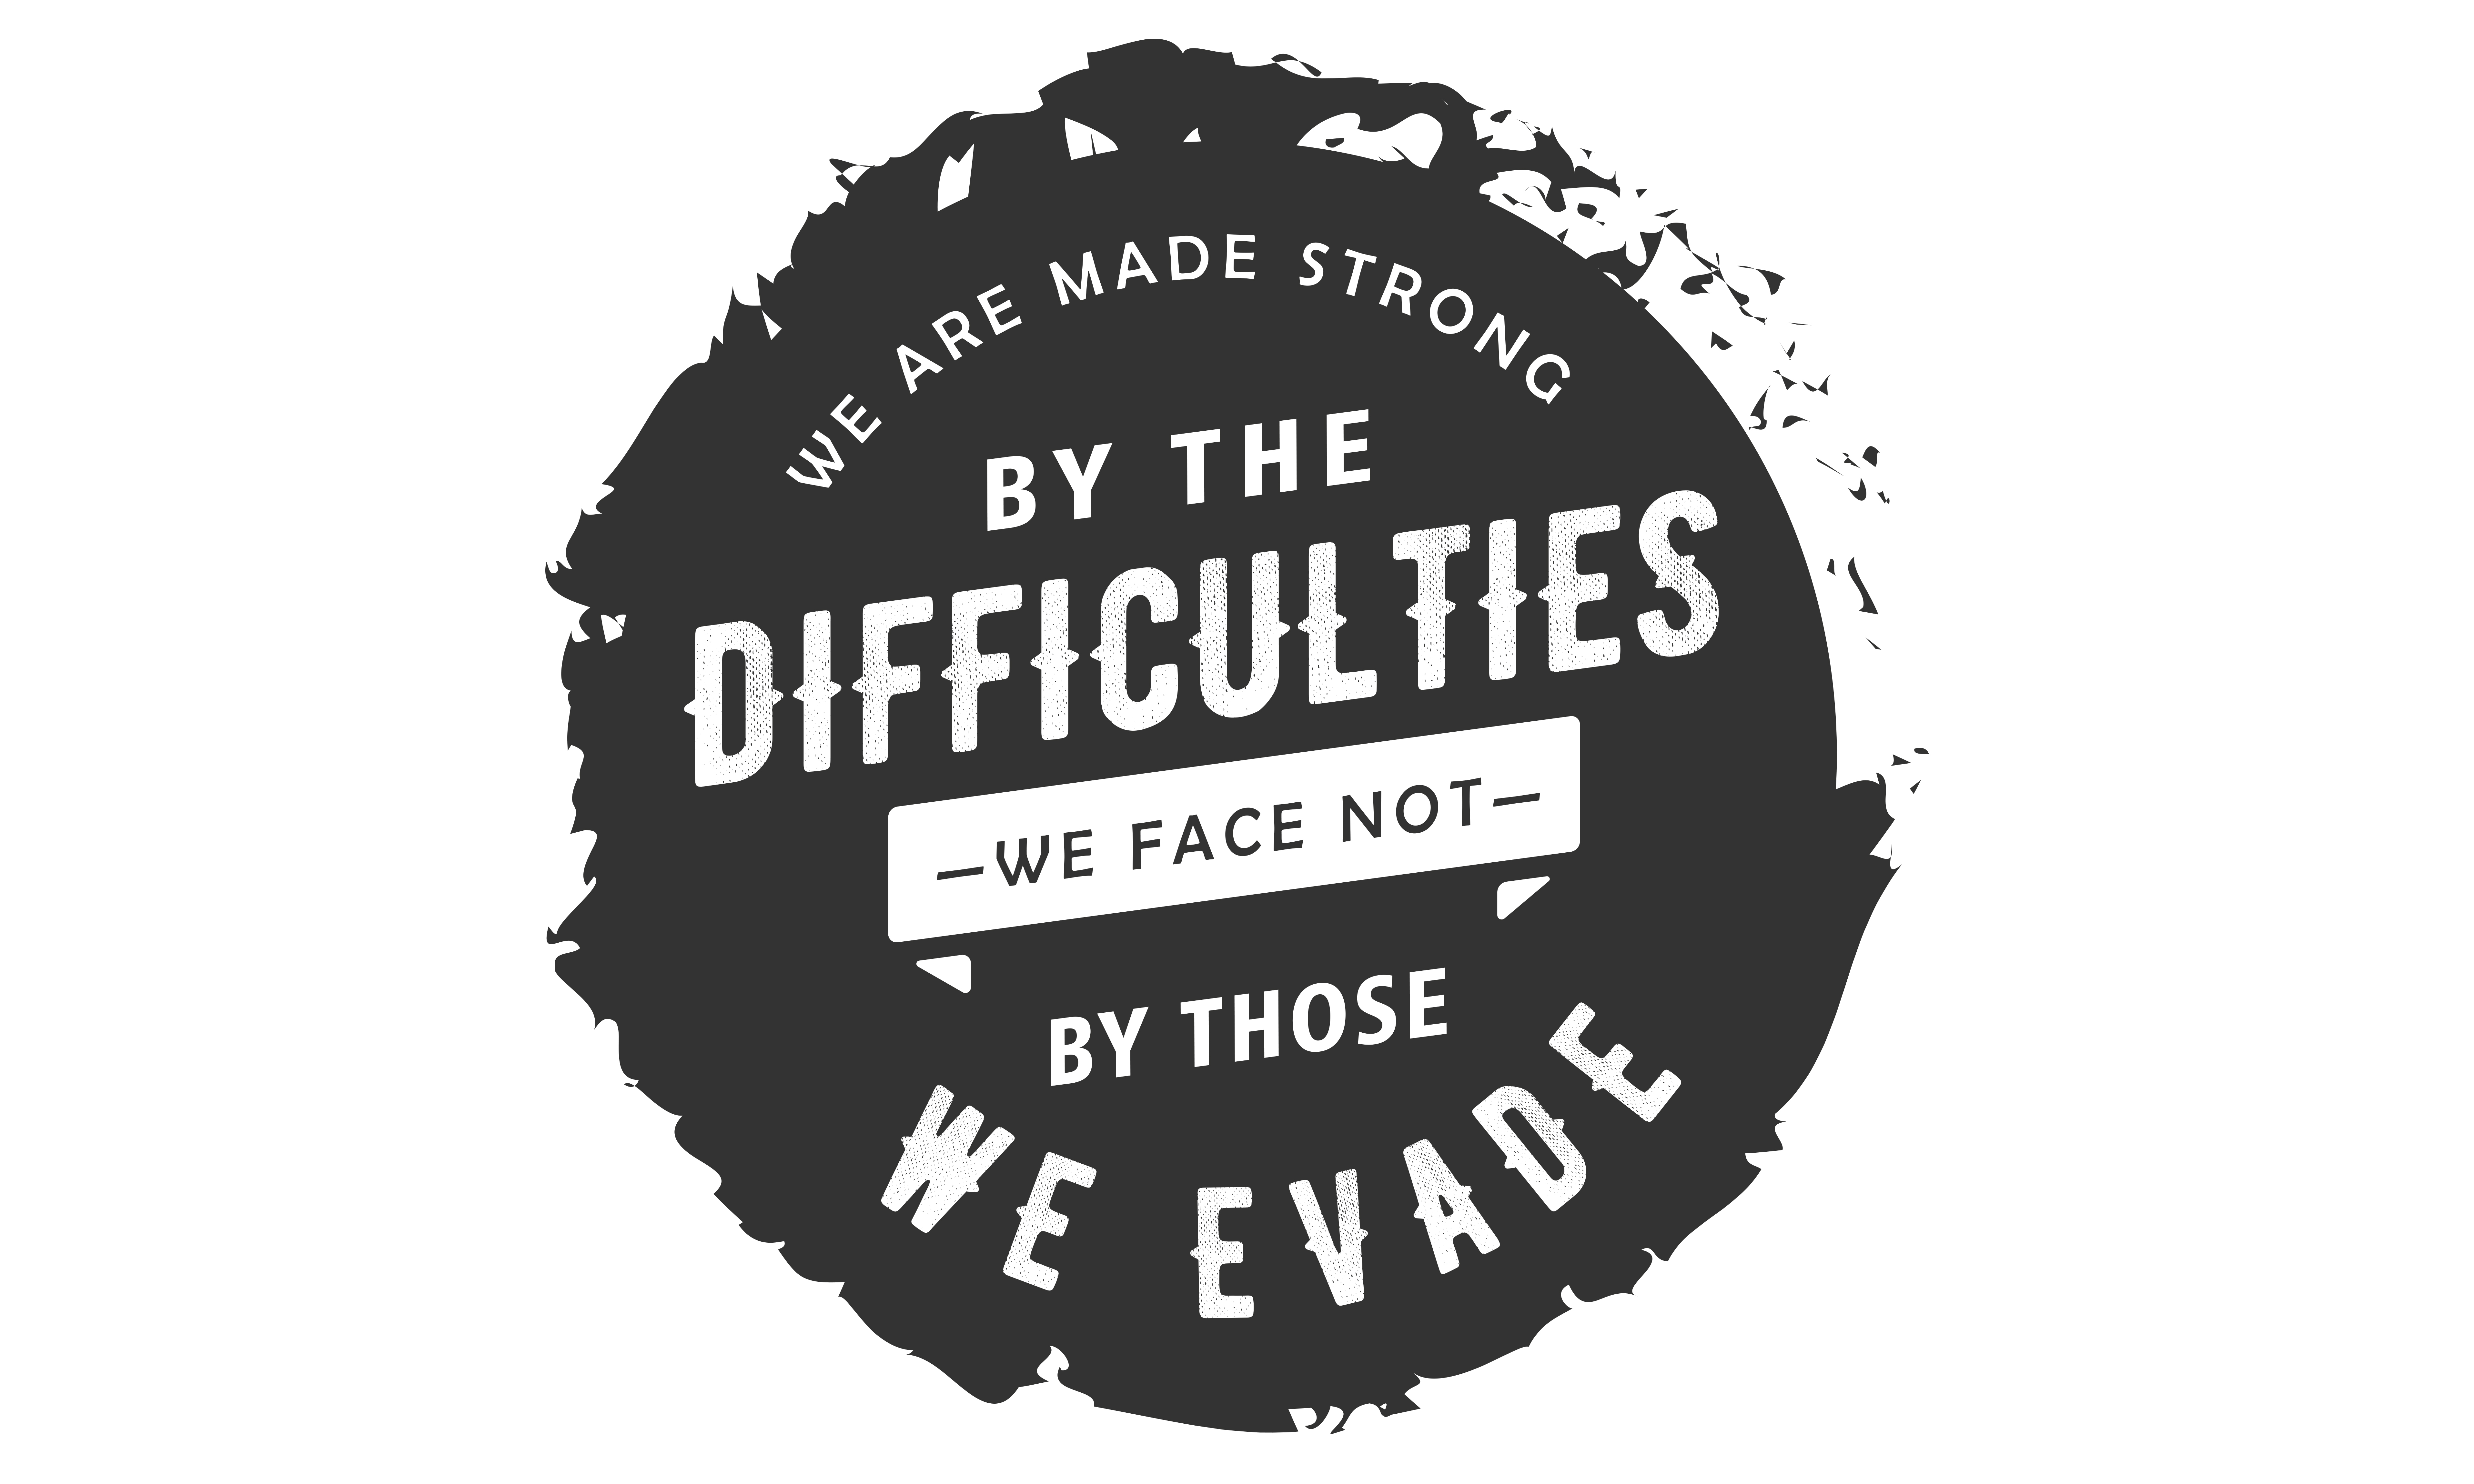 Download Free We Are Made Strong By The Difficulties Graphic By Baraeiji for Cricut Explore, Silhouette and other cutting machines.